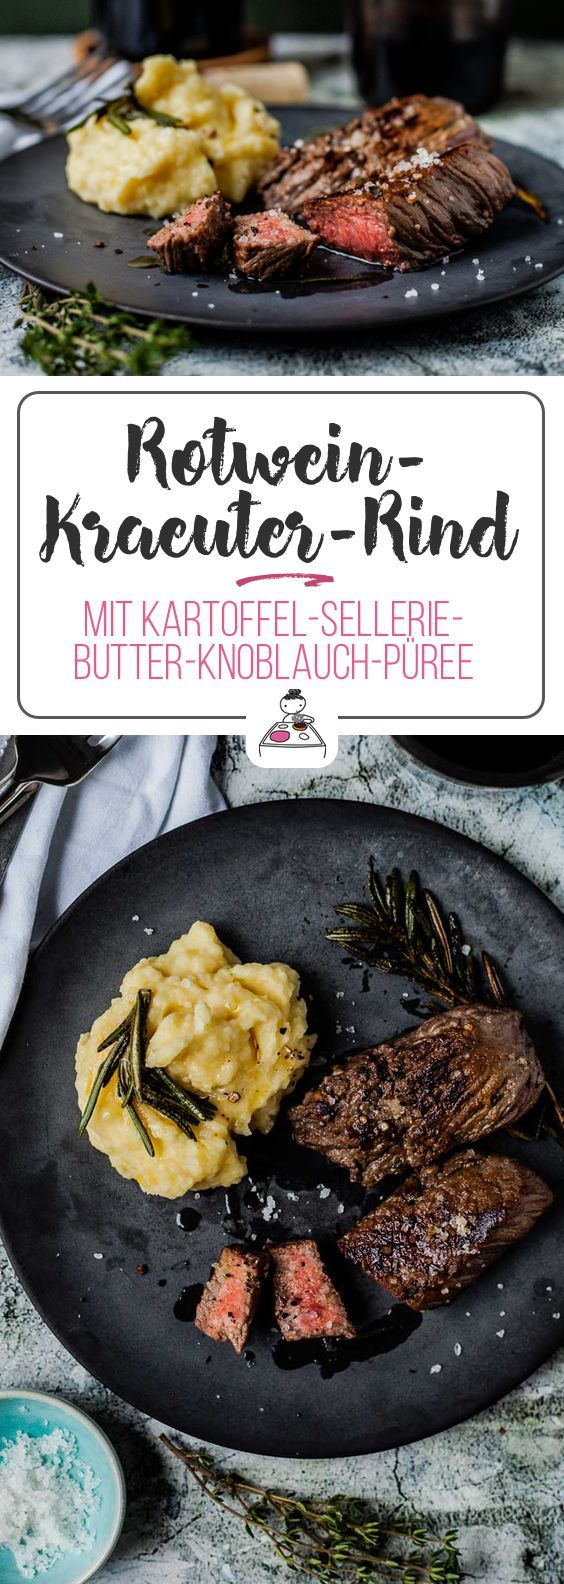 Photo of Red wine, herb and beef with potato and celery butter and garlic puree. Juchee! – Gourmet guerrilla